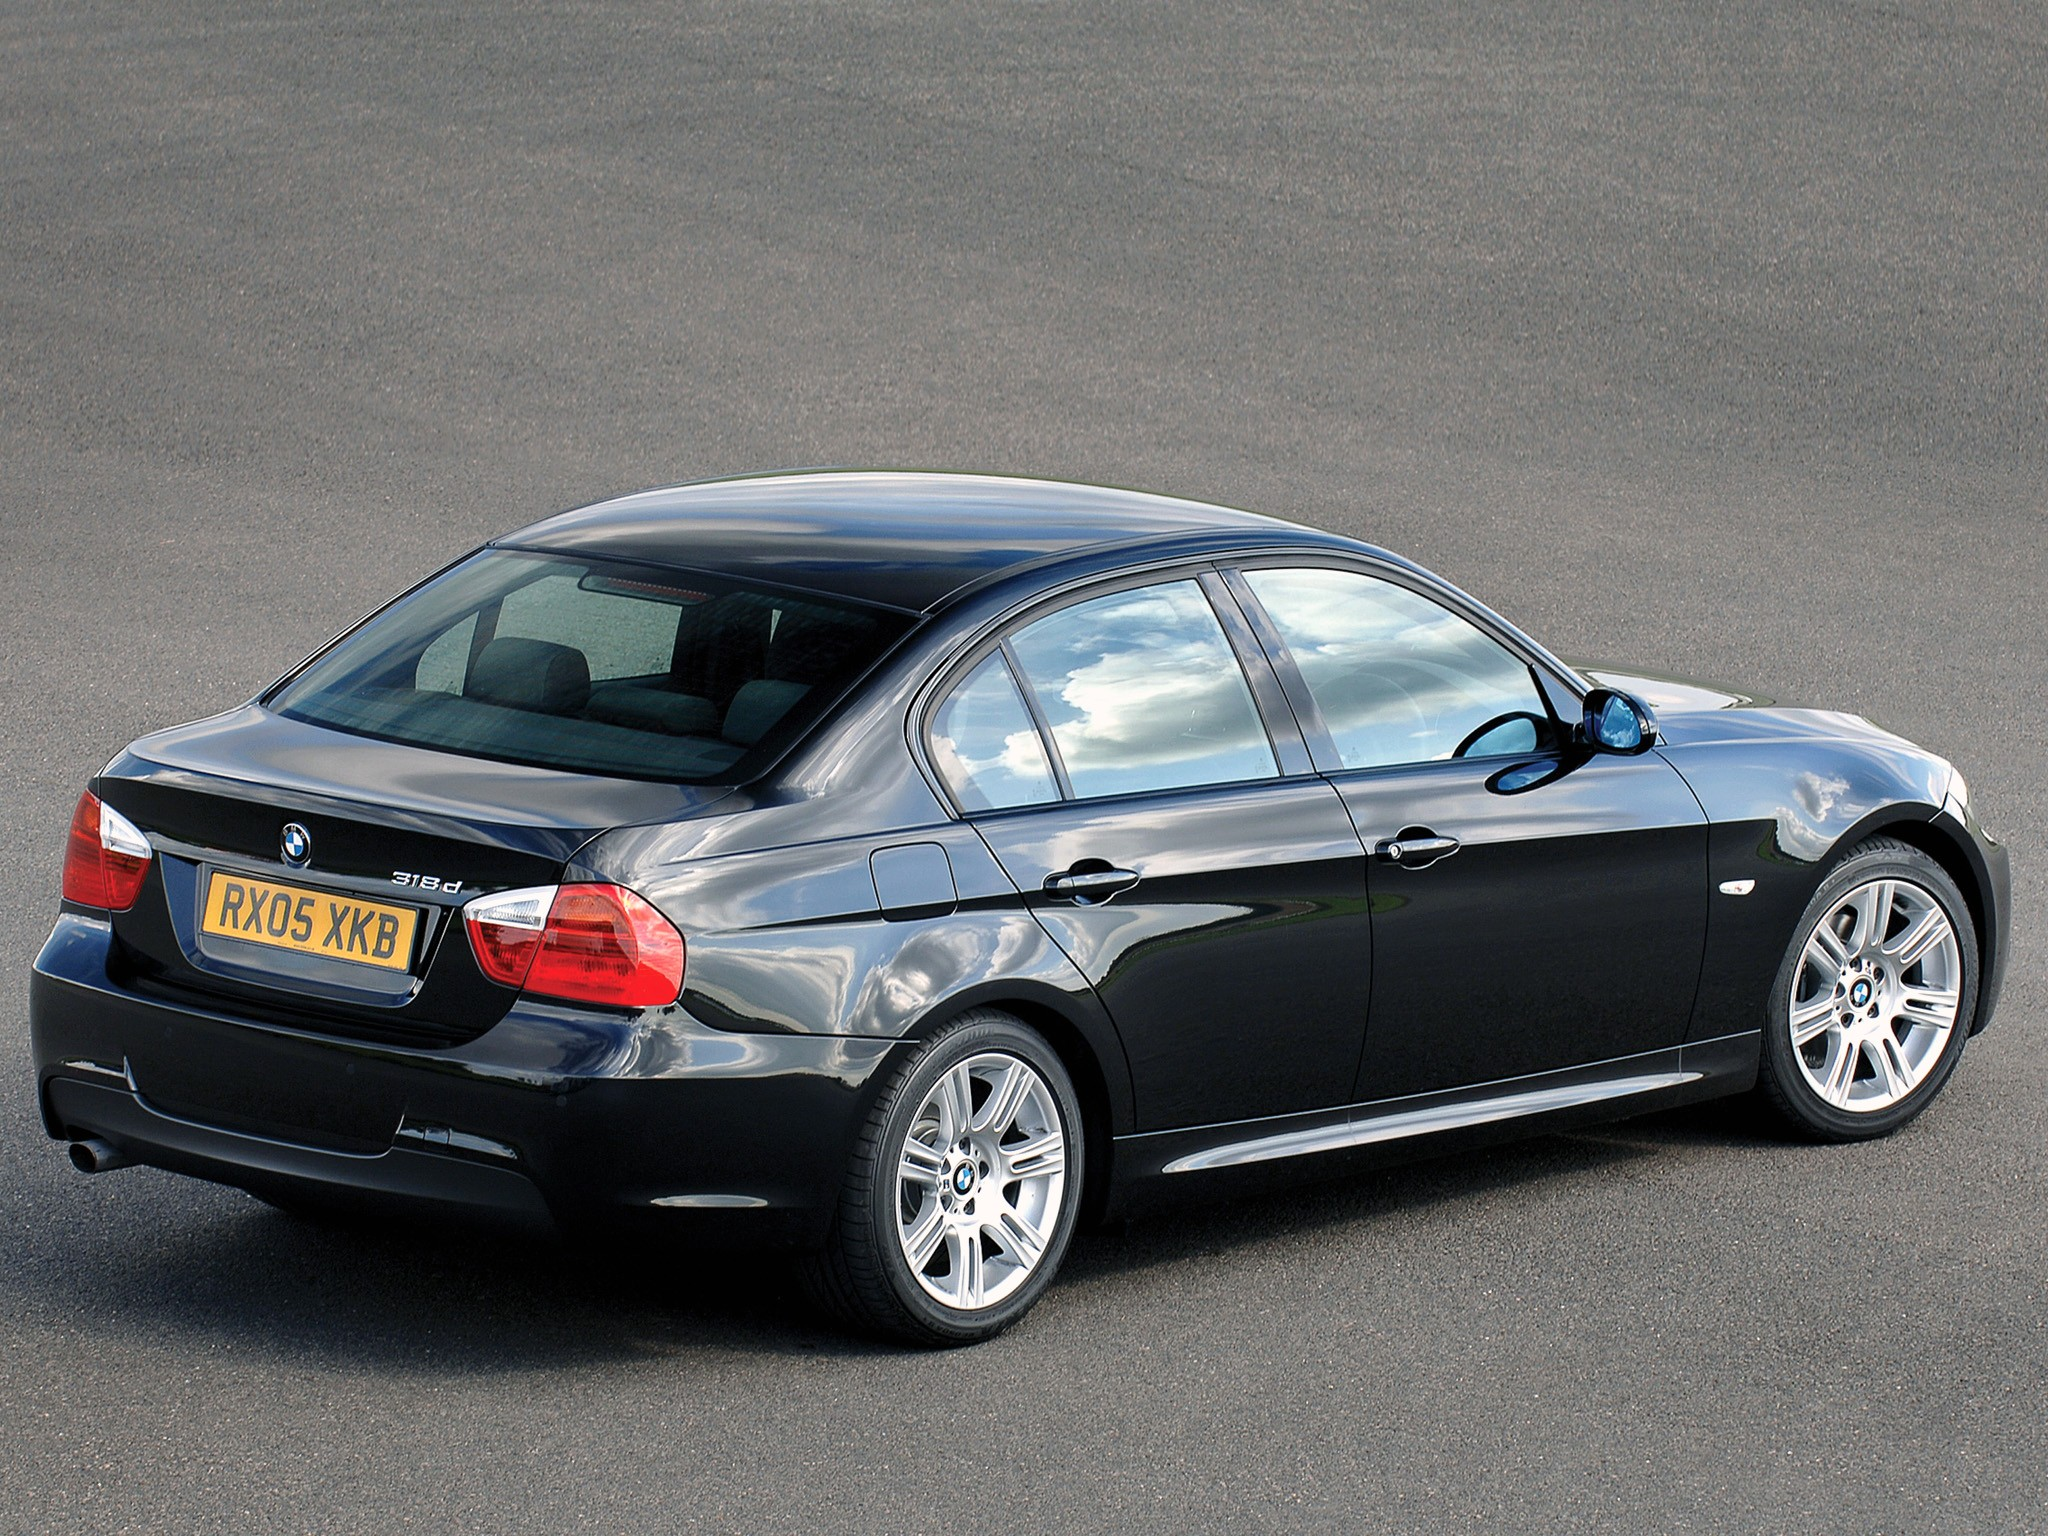 BMW 3 series 328xi 2005 photo - 12